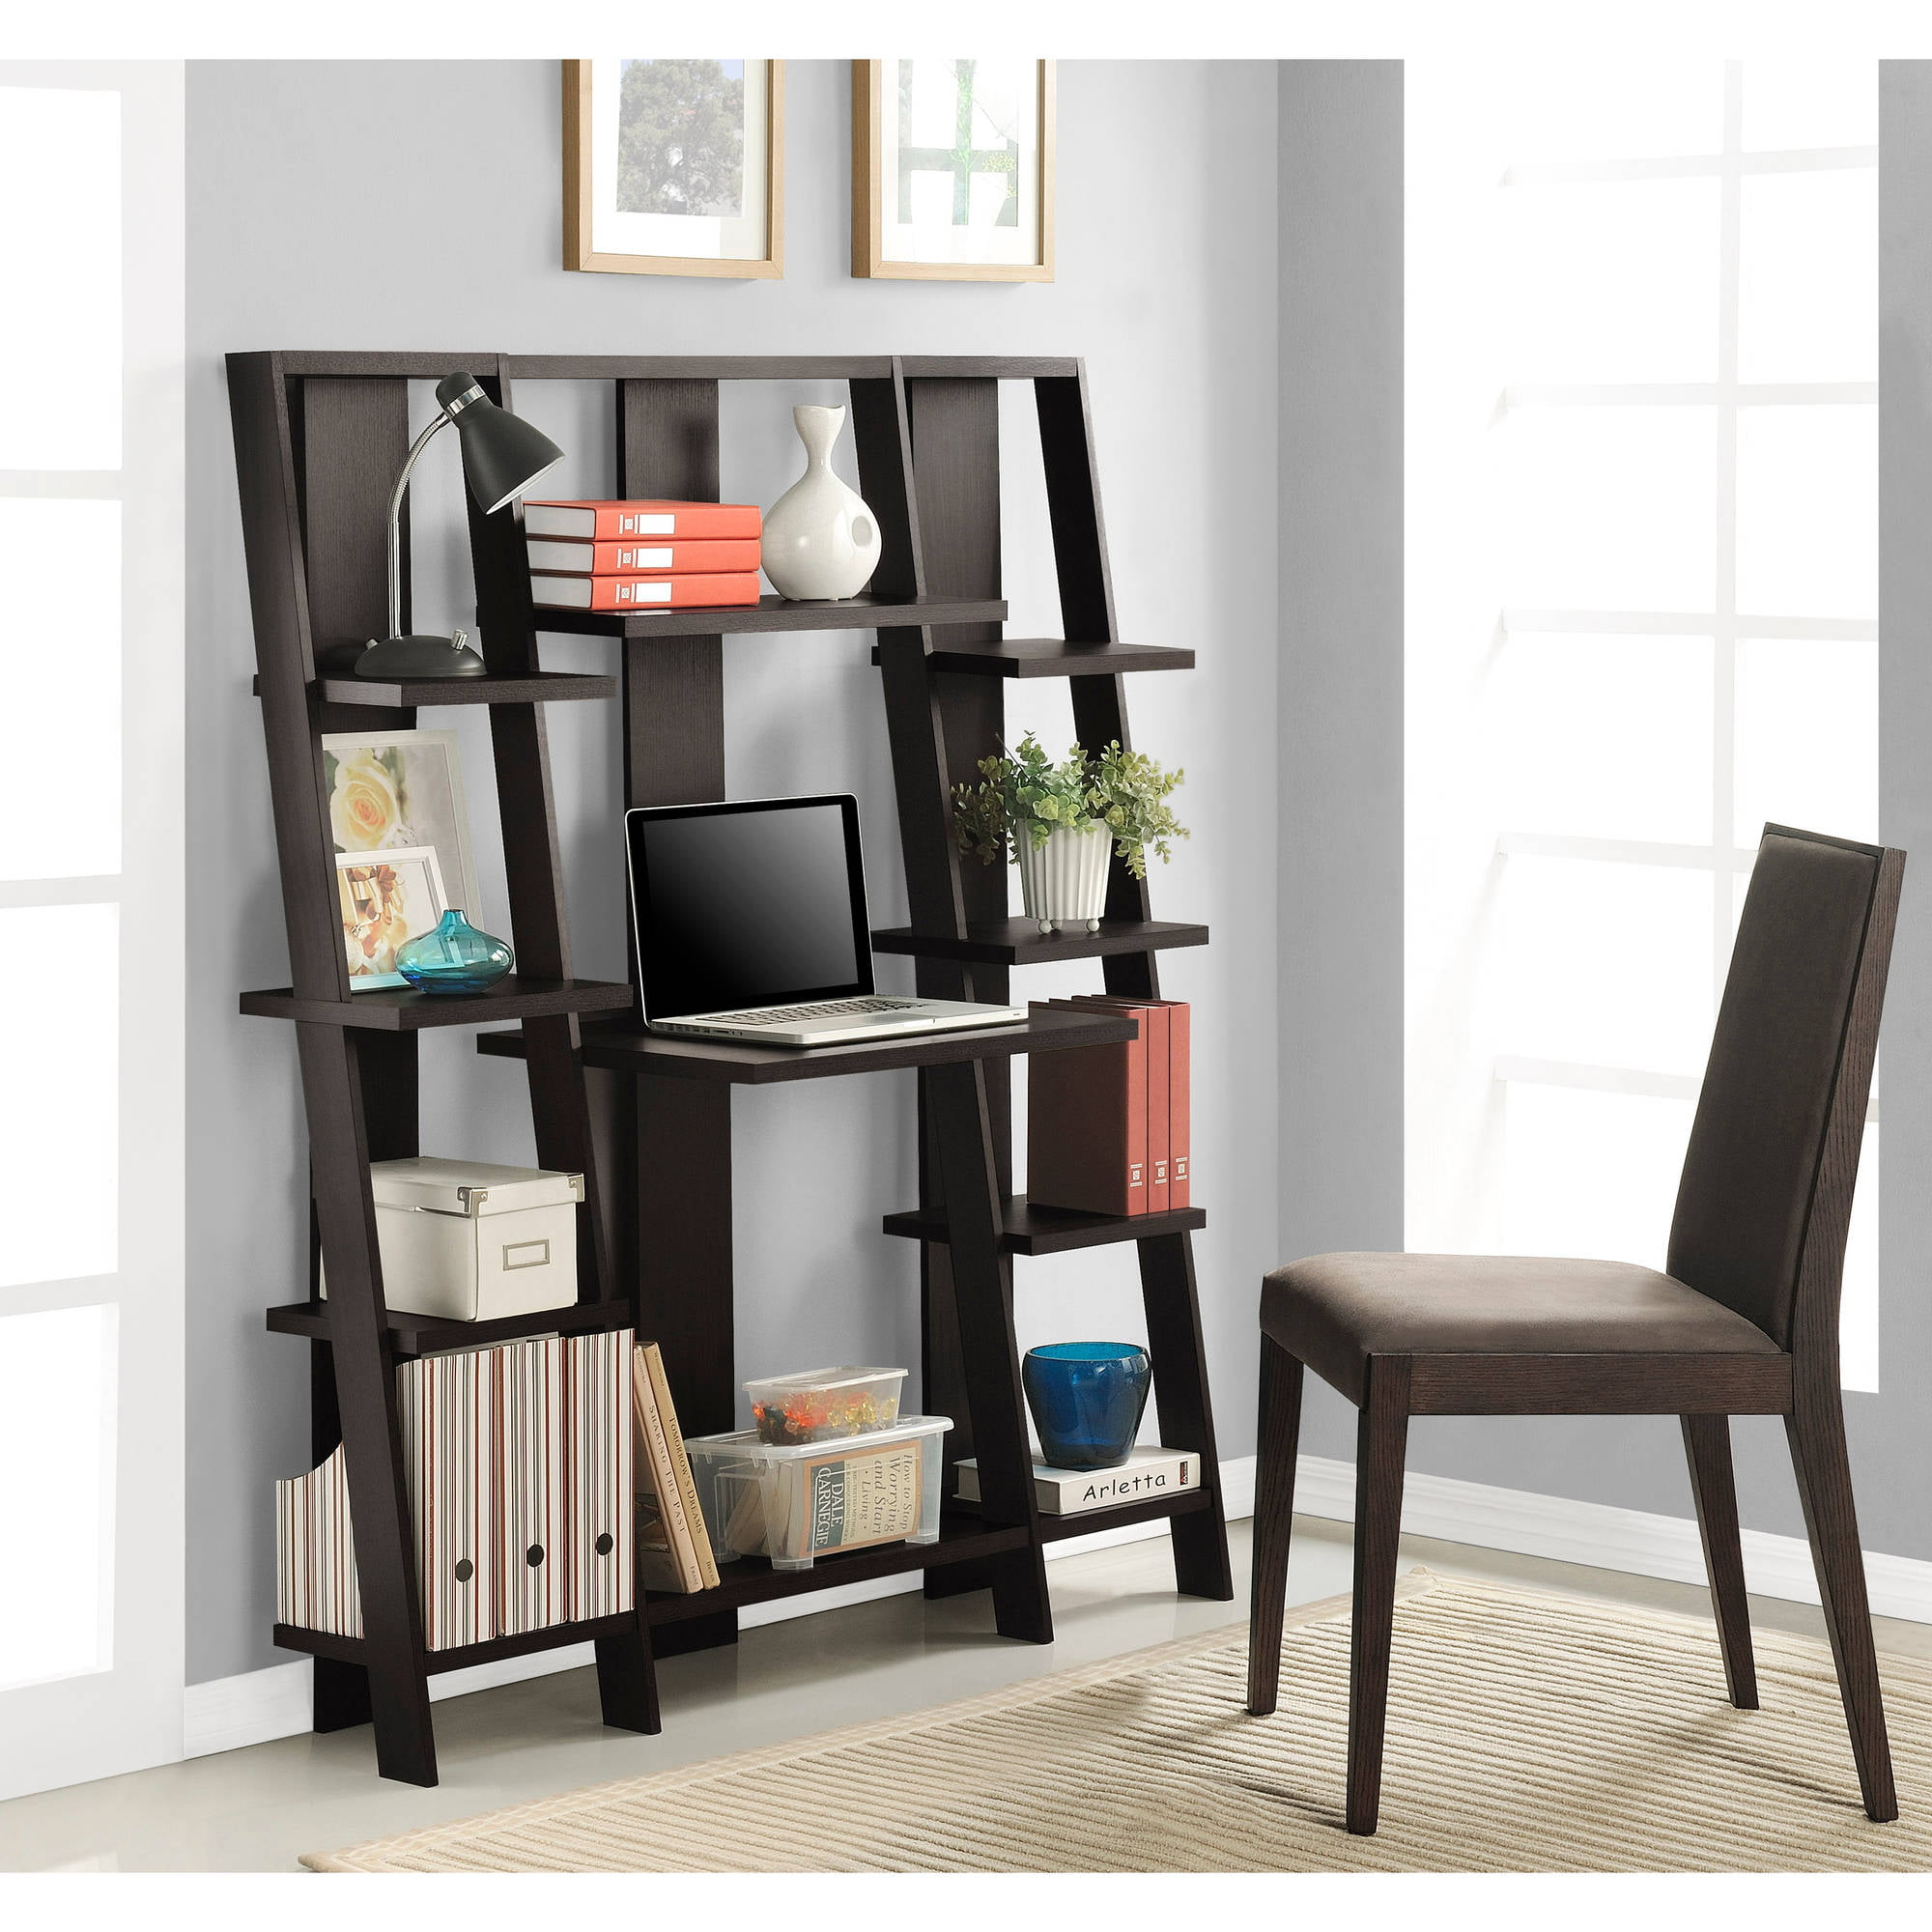 mainstays home 8 shelf bookcase multiple finishes walmart